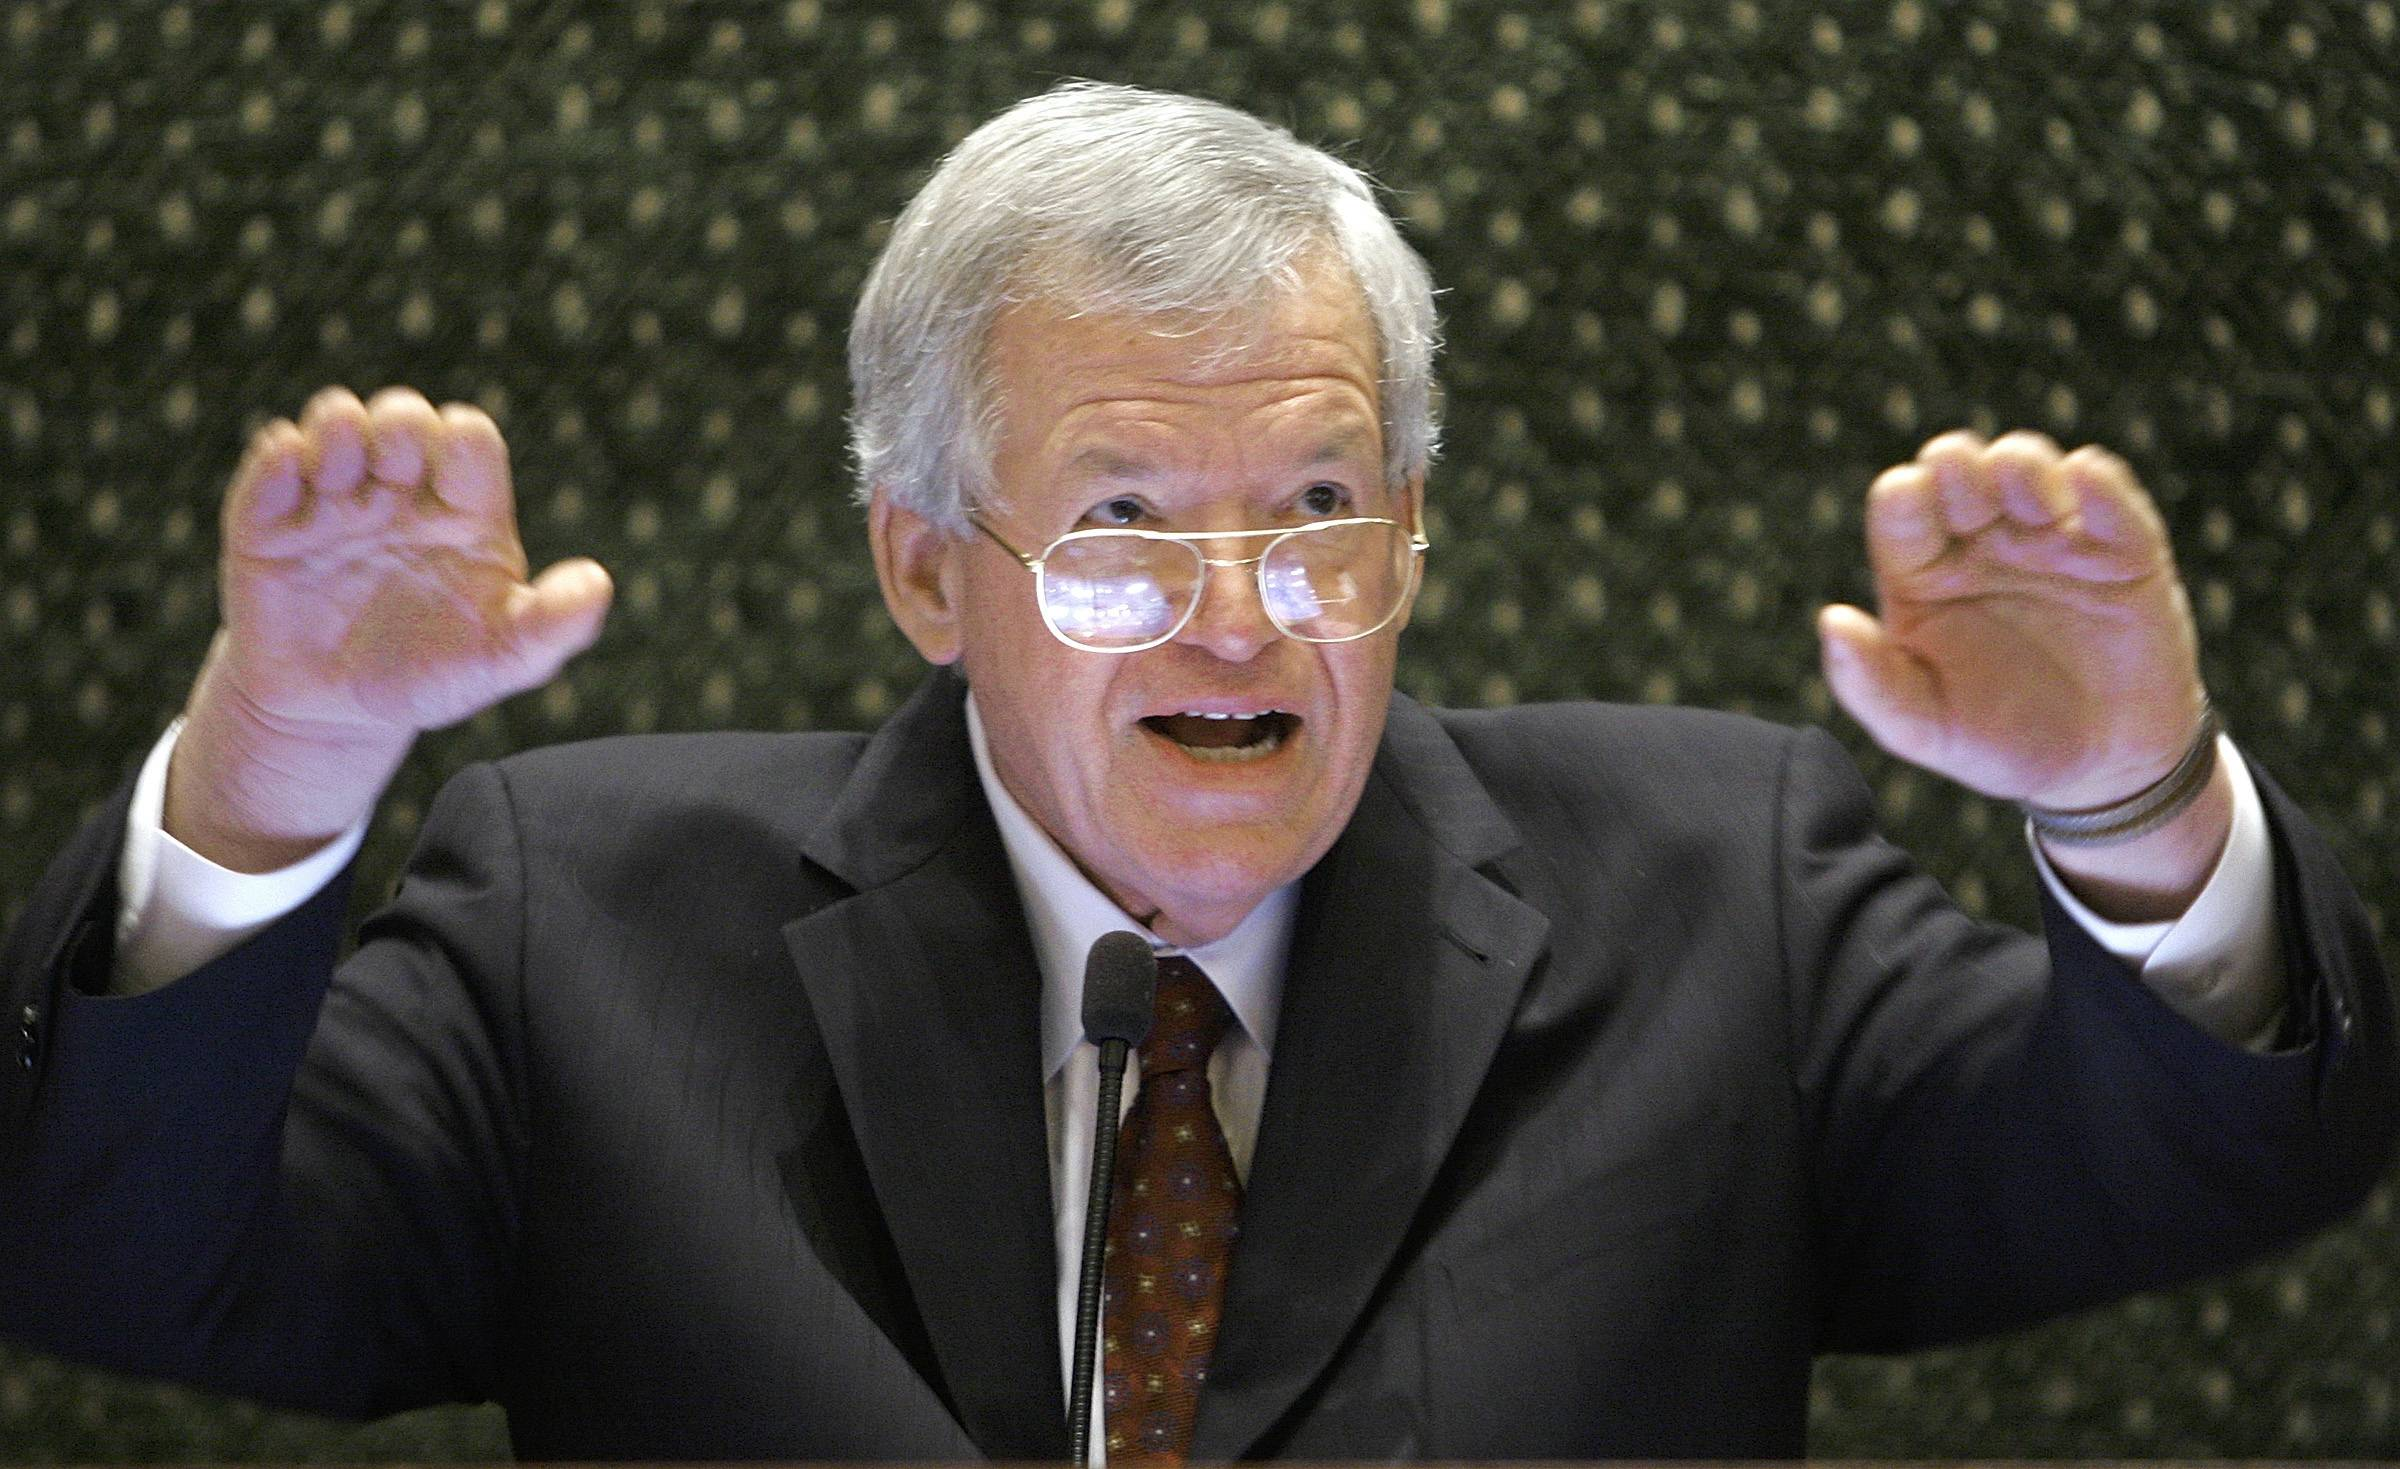 A former assistant U.S. attorney says a guilty plea by former U.S. House Speaker Dennis Hastert could help keep any secrets in the case, but the attempt won't be leakproof.